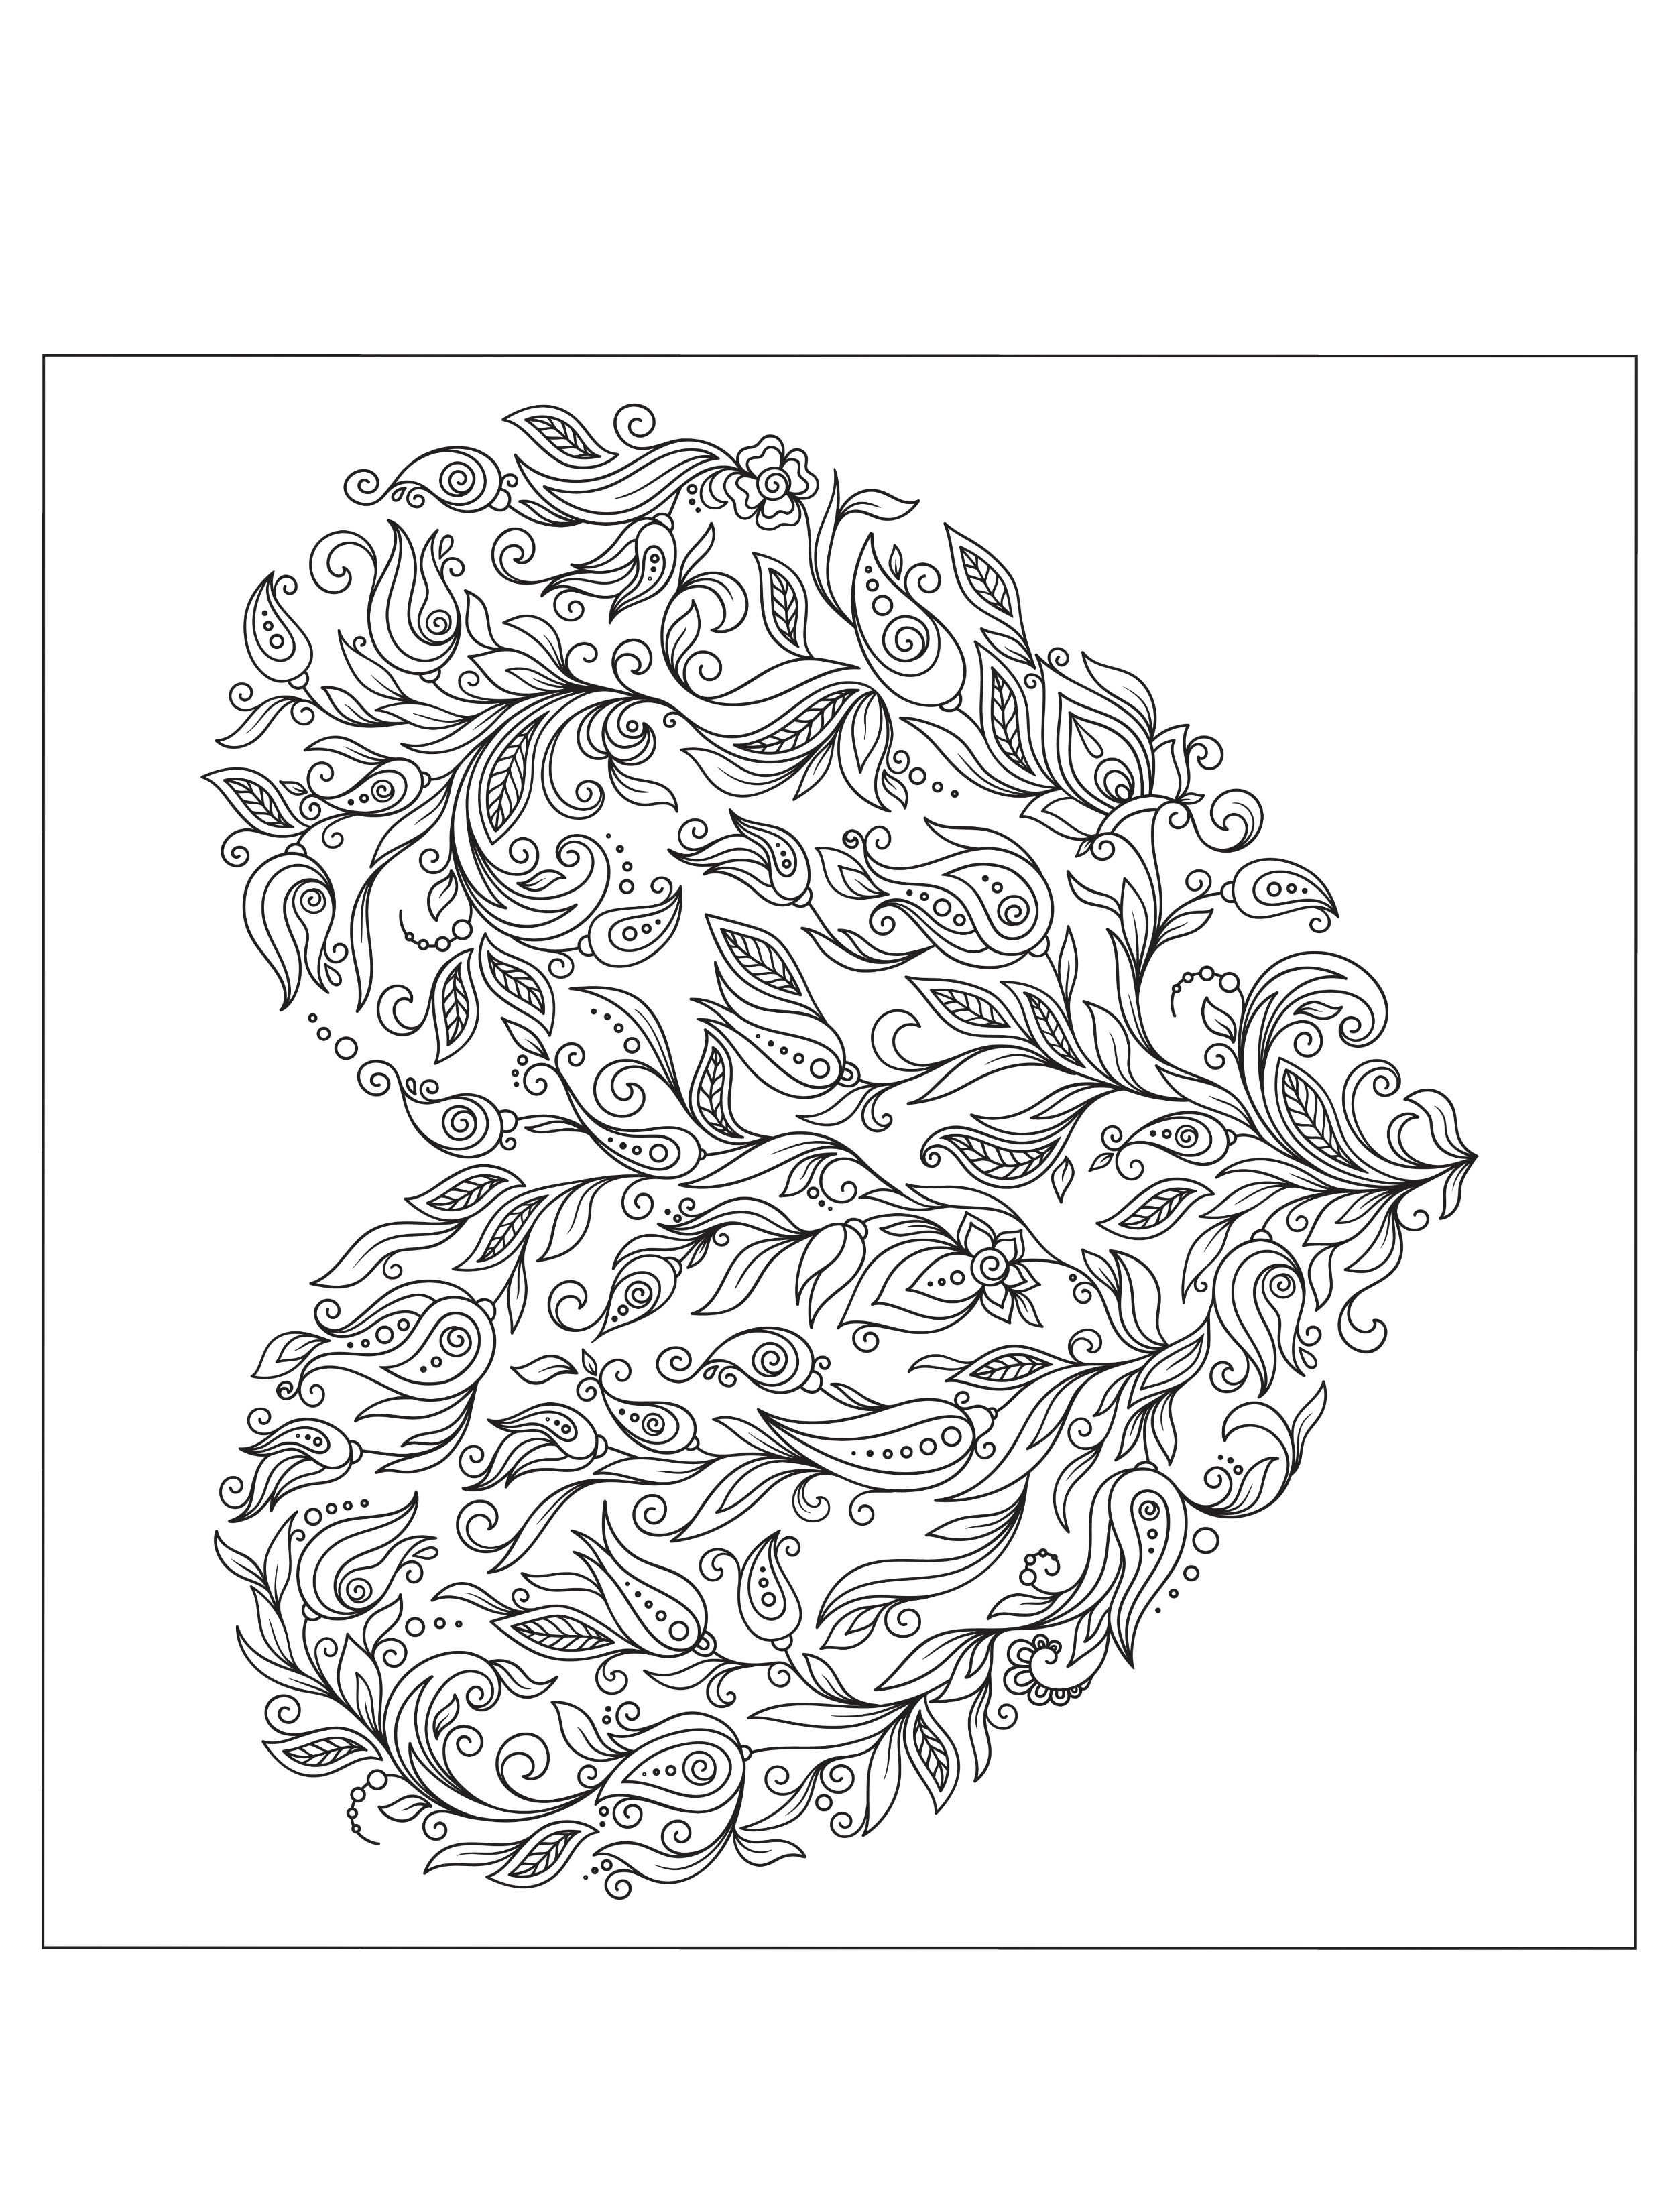 Coloring Pages Valentine 20 Free Printable Valentines Adult Coloring Pages Nerdy Mamma